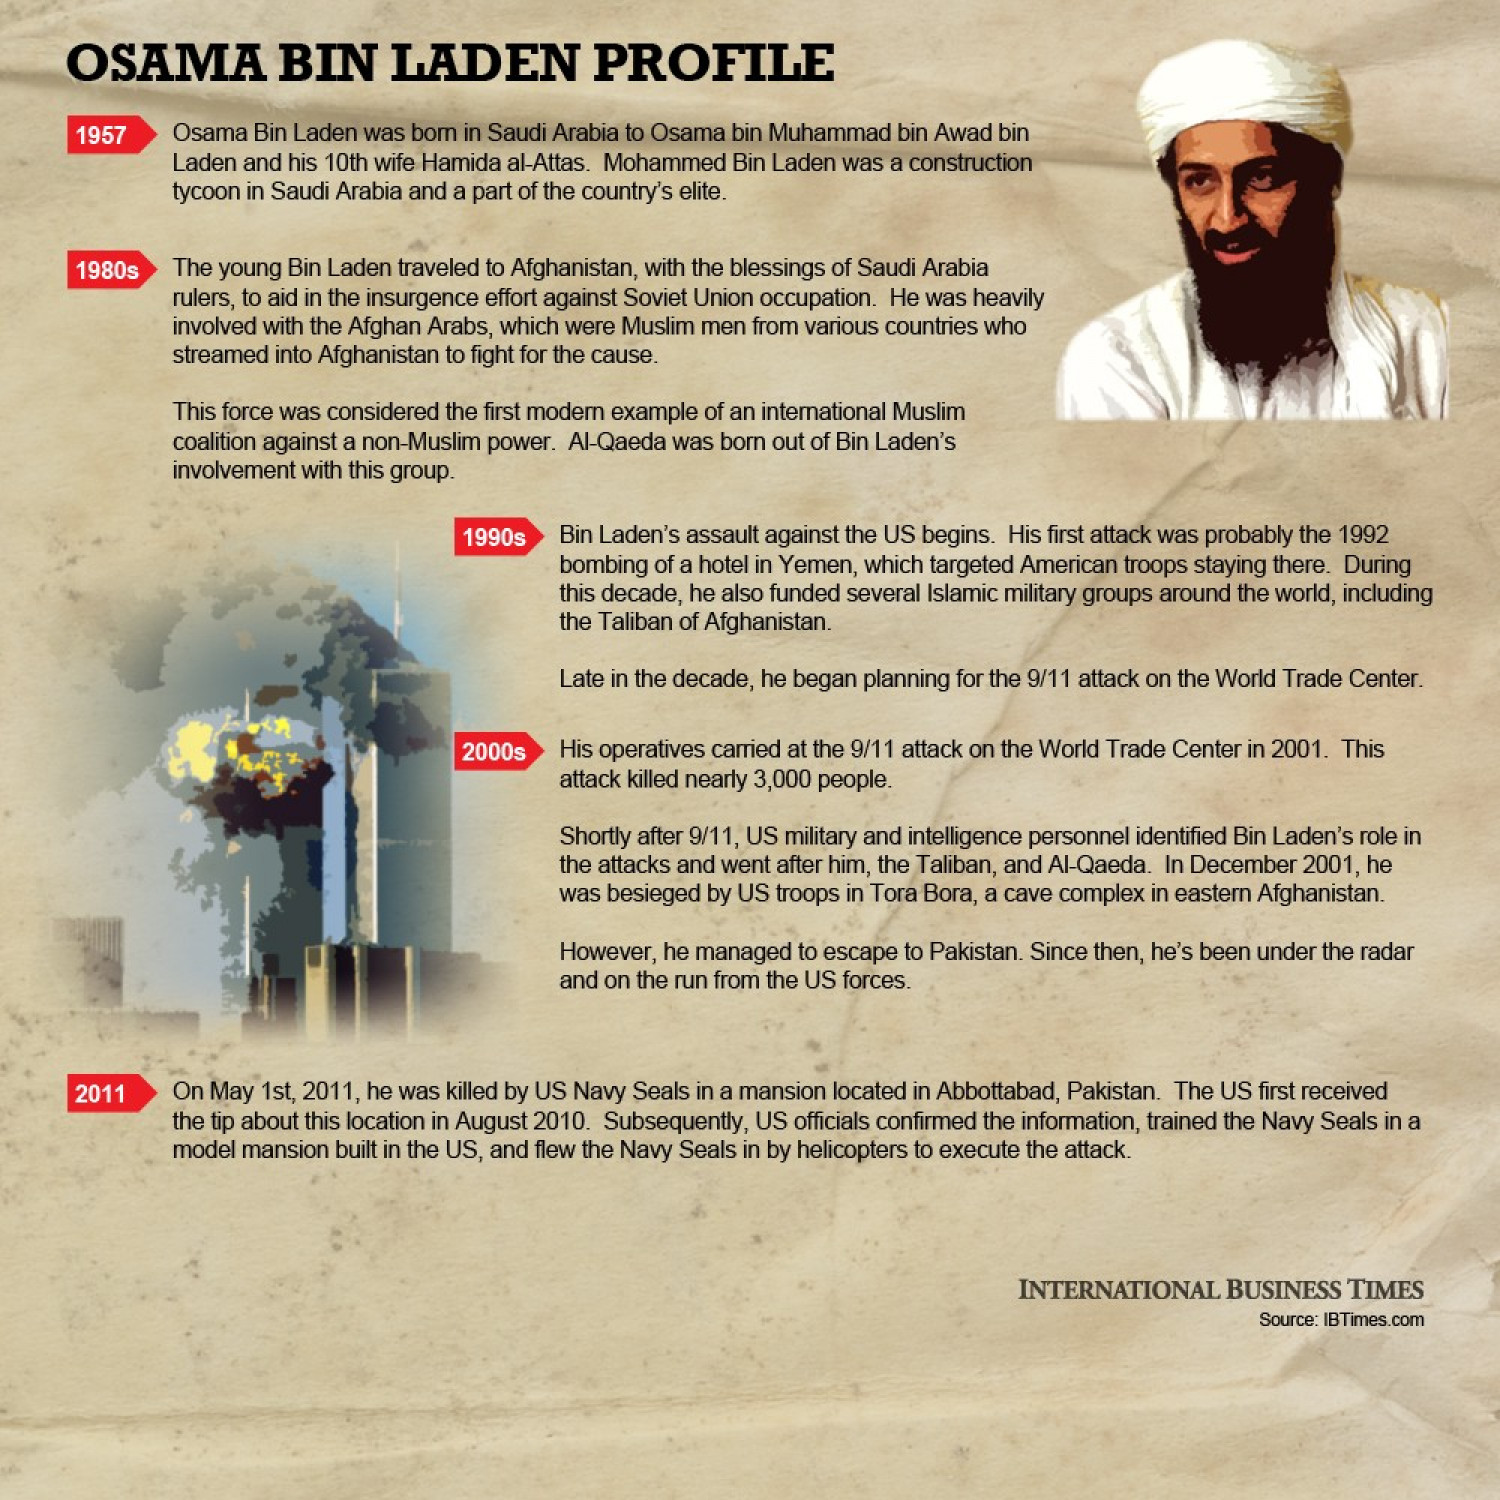 osama bin laden biography essay Biography osama bin laden is both one of the cia's most osaman bin ladin essay and biography to cite all of the sources properly when writing their essay: osama bin laden - essay uk free essay database.